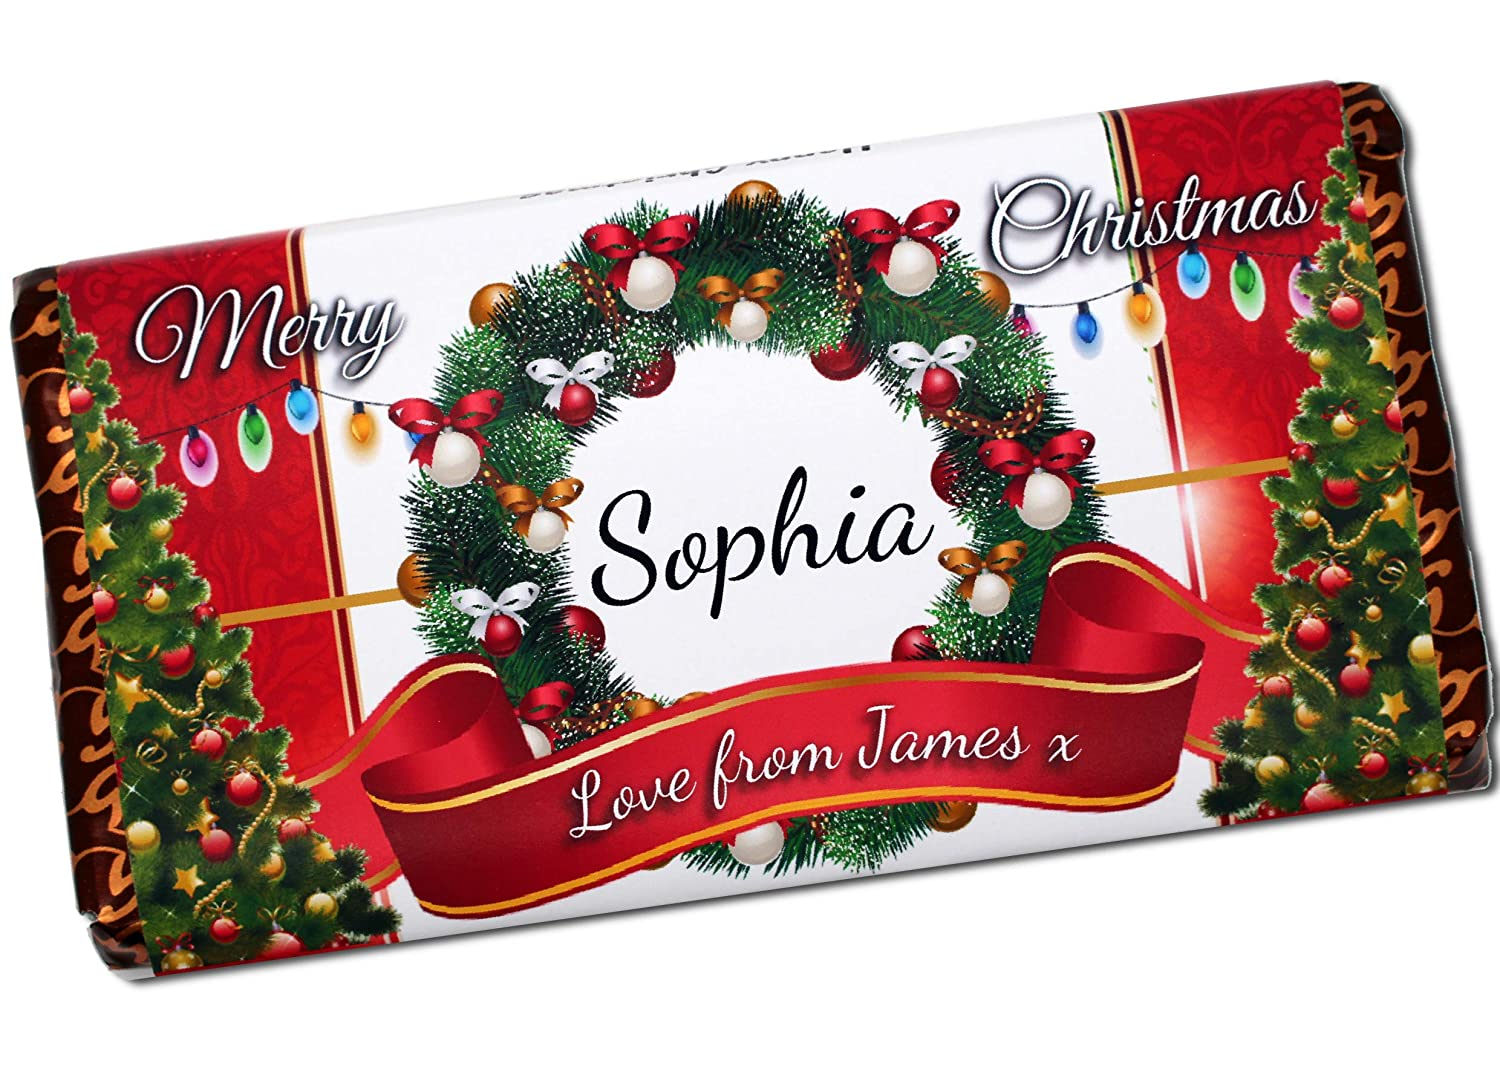 Christmas Chocolate.Personalised Merry Christmas Chocolate Bar 114g Xmas Girls Boys Mum Dad Stocking Fillers Gift Ideas Present For Him Her N116